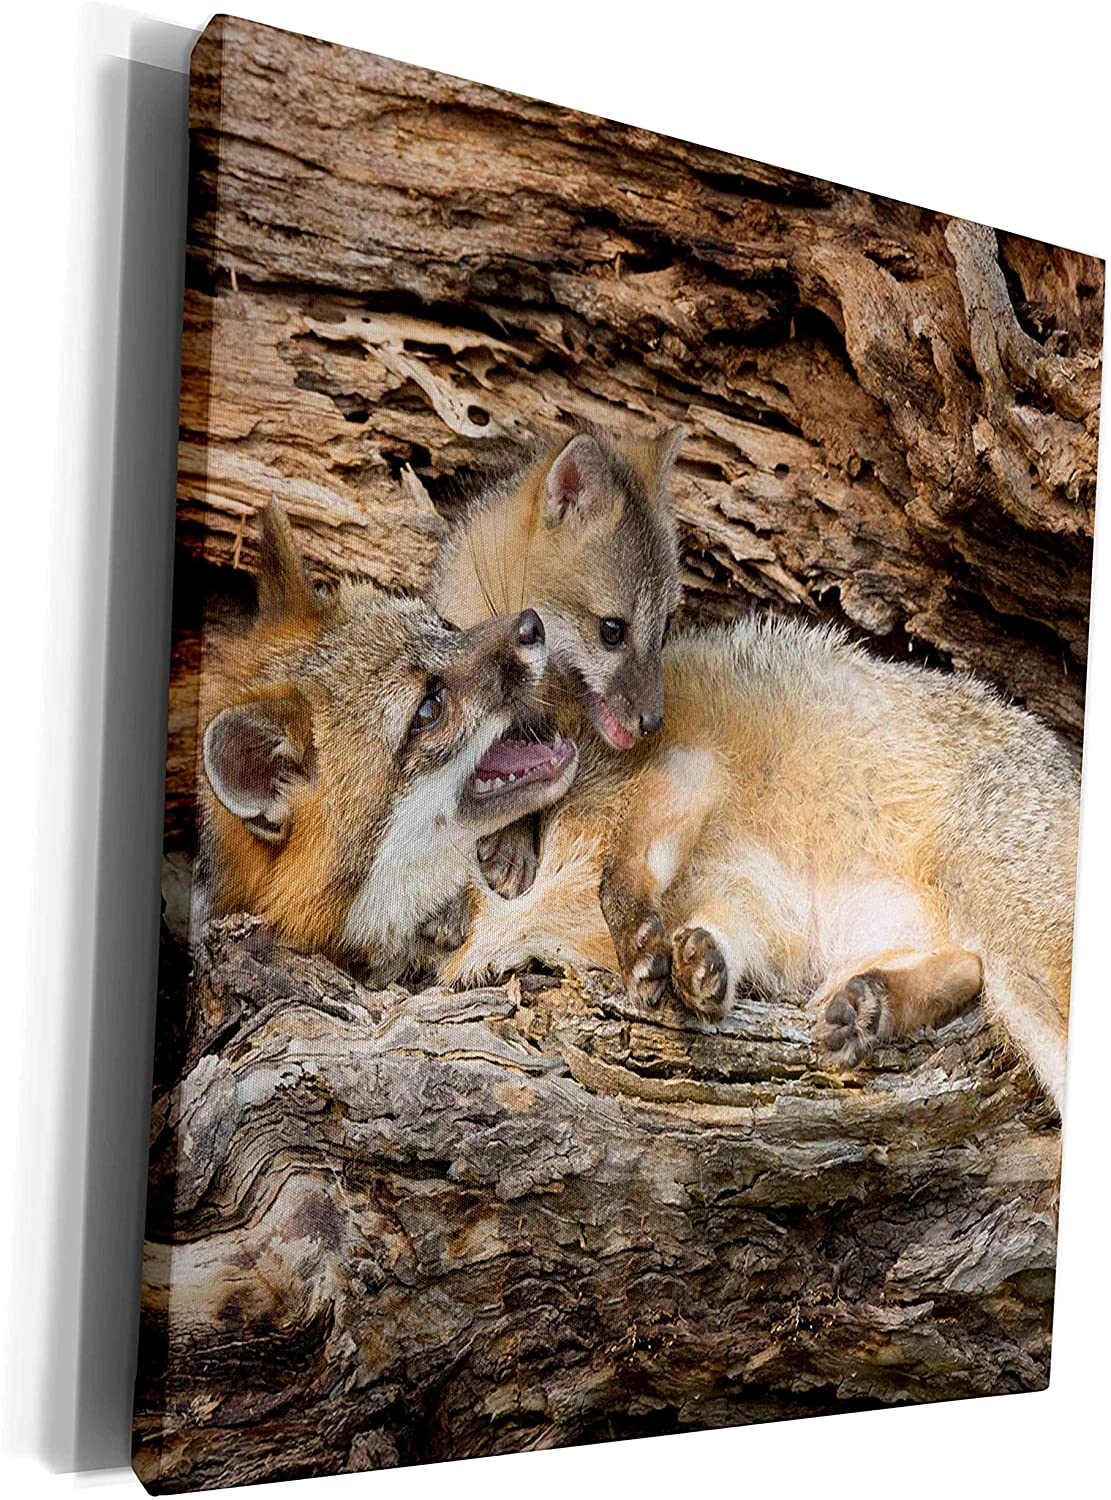 3dRose Danita Delimont - Jaynes Gallery - Foxes - USA, Minnesota, Sandstone. Grey fox mother and pup in a hollow log. - Museum Grade Canvas Wrap (cw_190757_1)